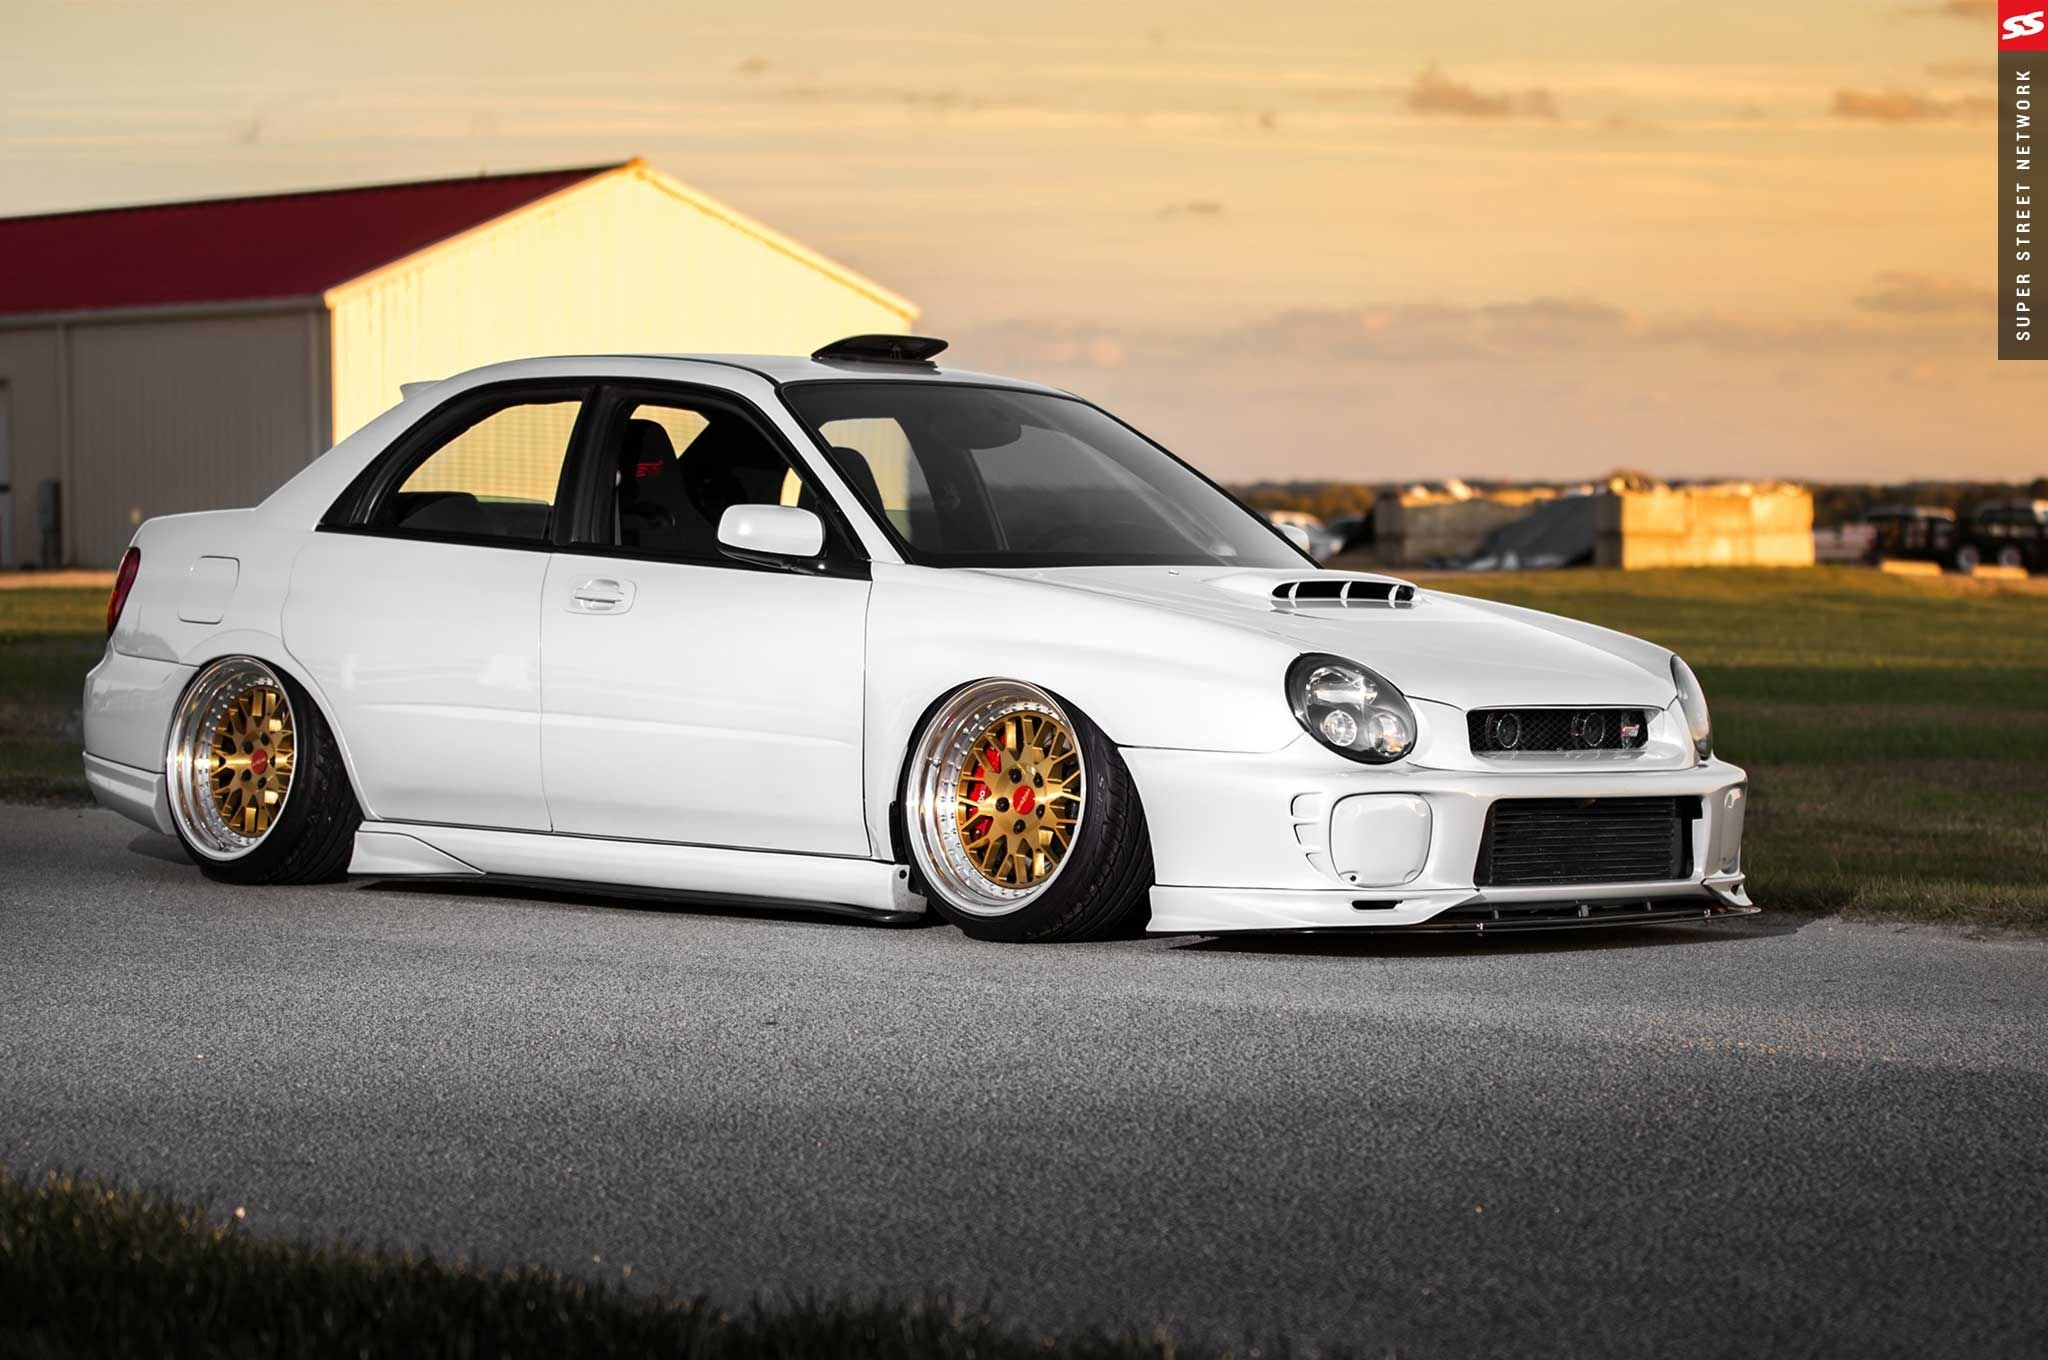 Modified Subaru Sti Wrx >> 2002 Subaru WRX STI cars modified wallpaper | 2048x1360 | 929356 | WallpaperUP